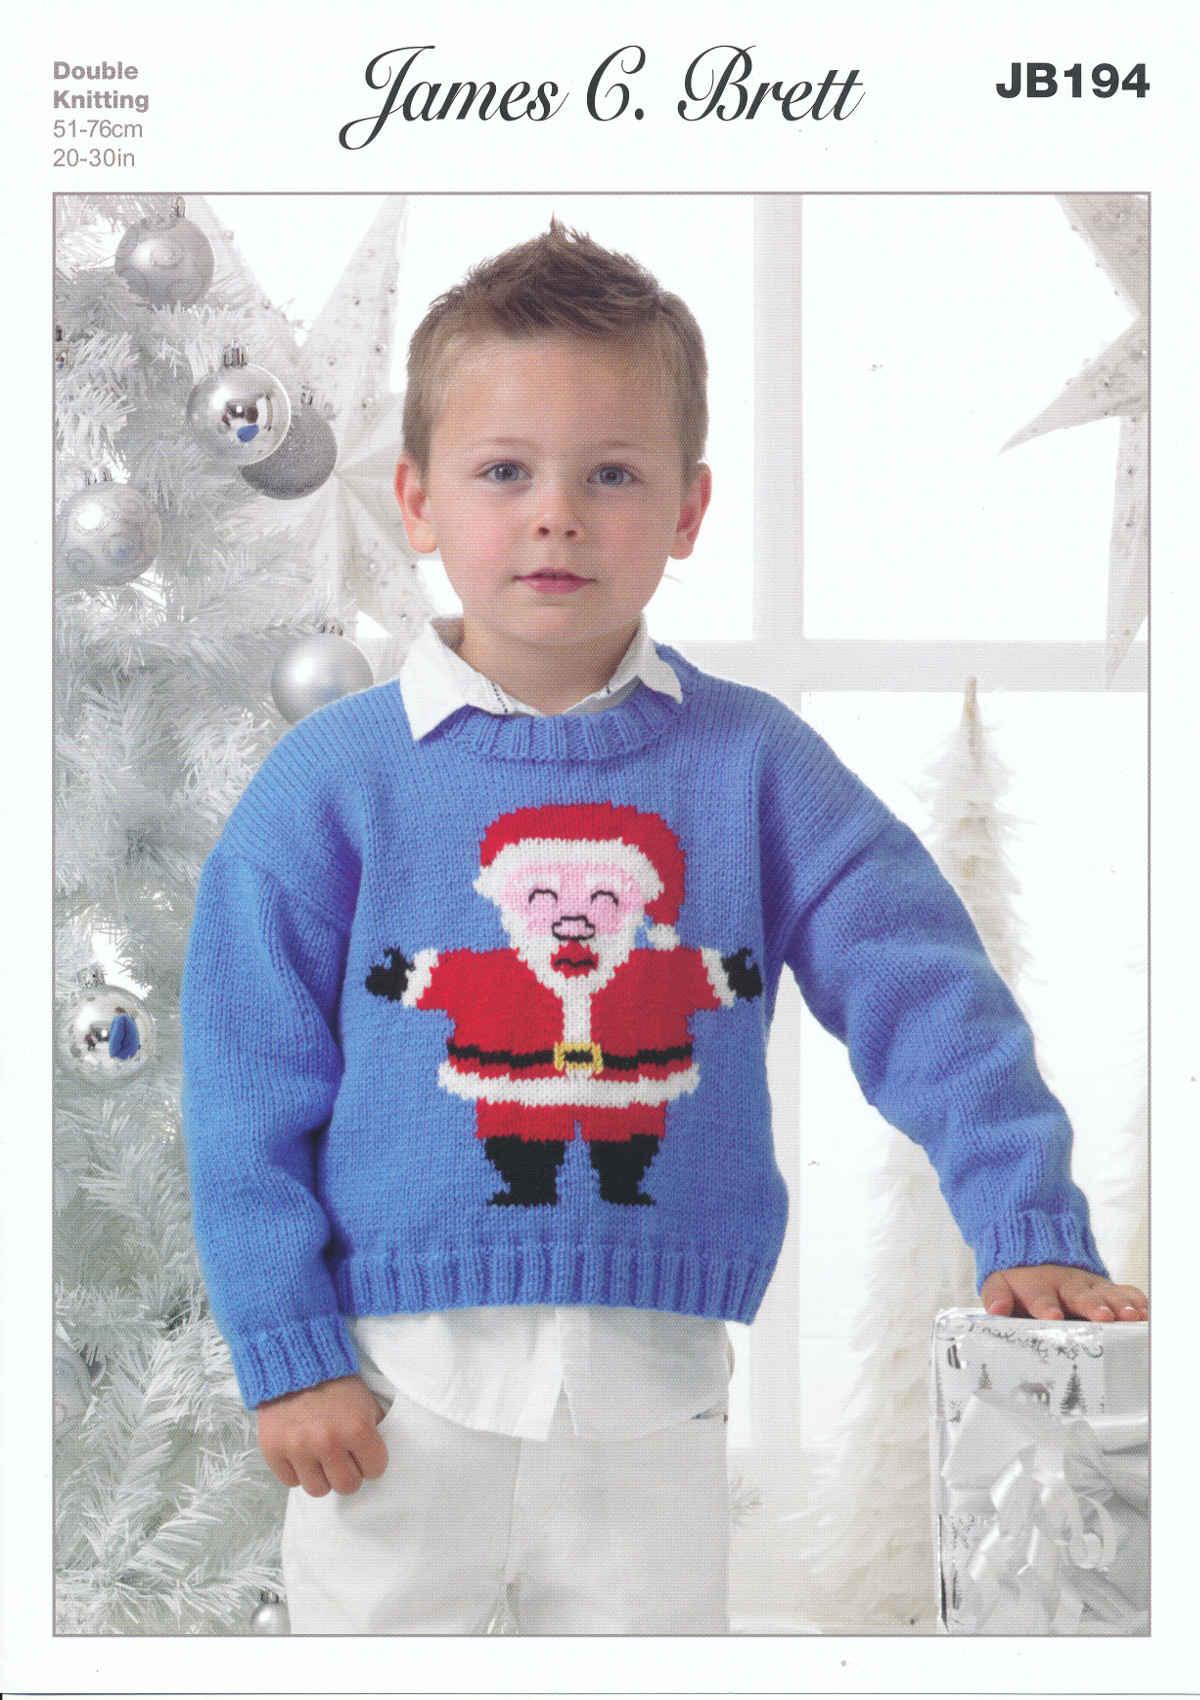 Free Knit Patterns For Headbands : James Brett Double Knitting Pattern Kids Christmas Santa Jumper Sweater JB194...